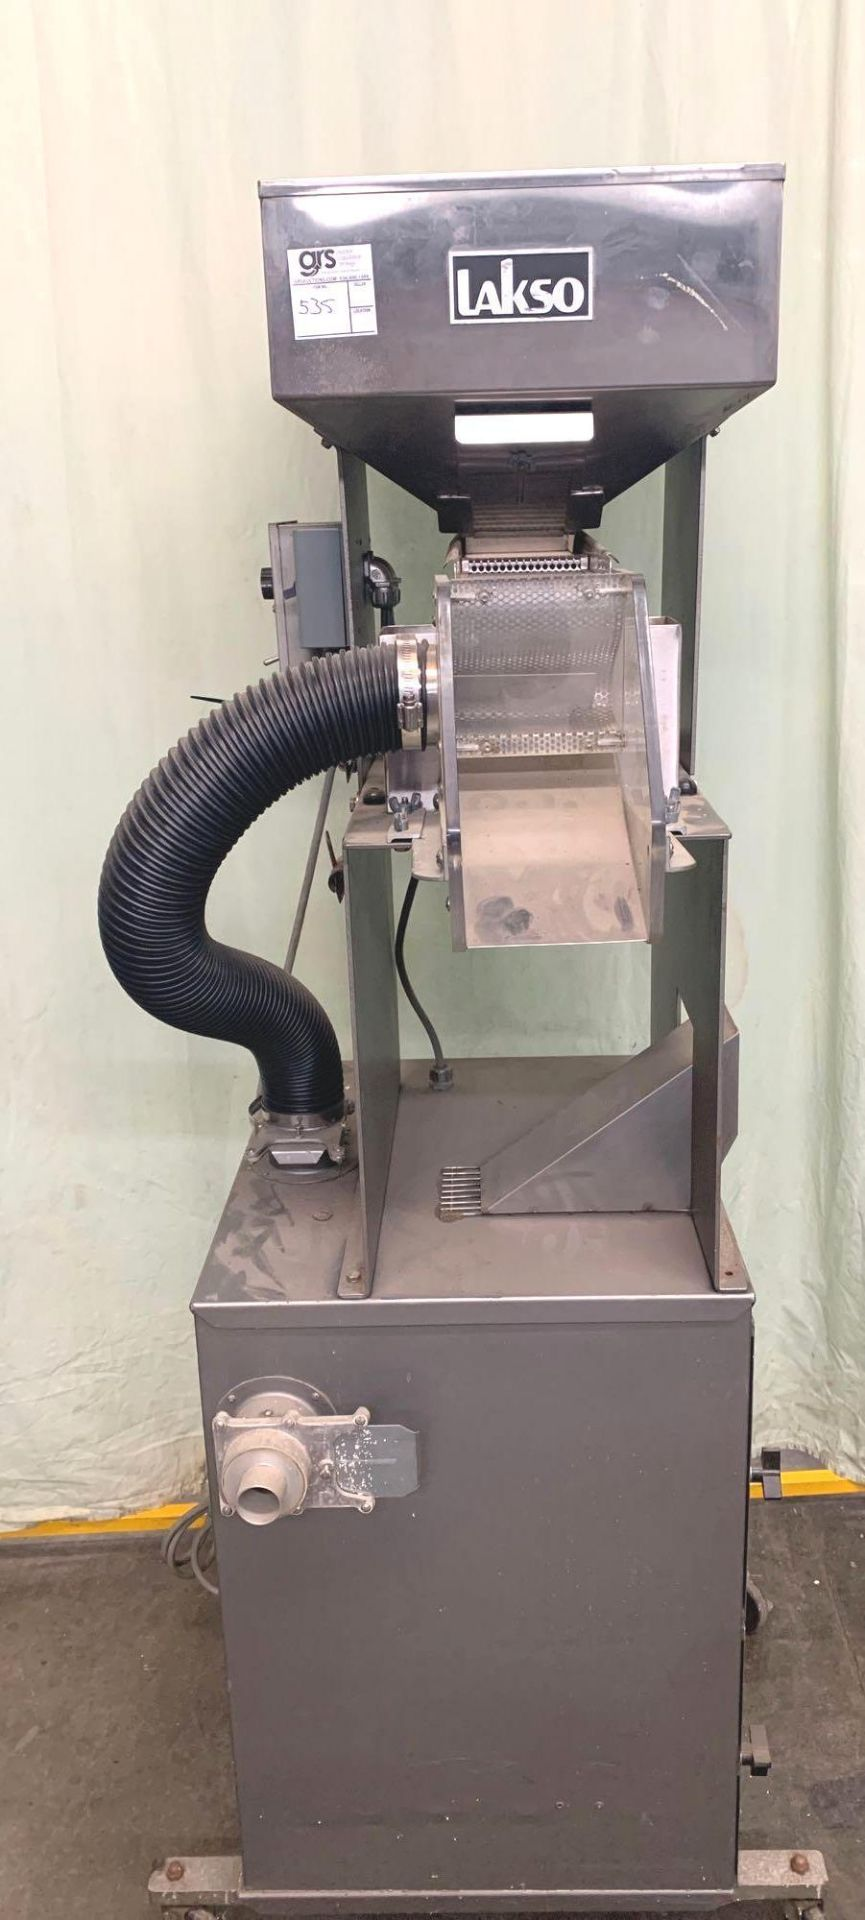 Lakso Vibratory Tablet Feeder w/ Donaldson Dust Collector